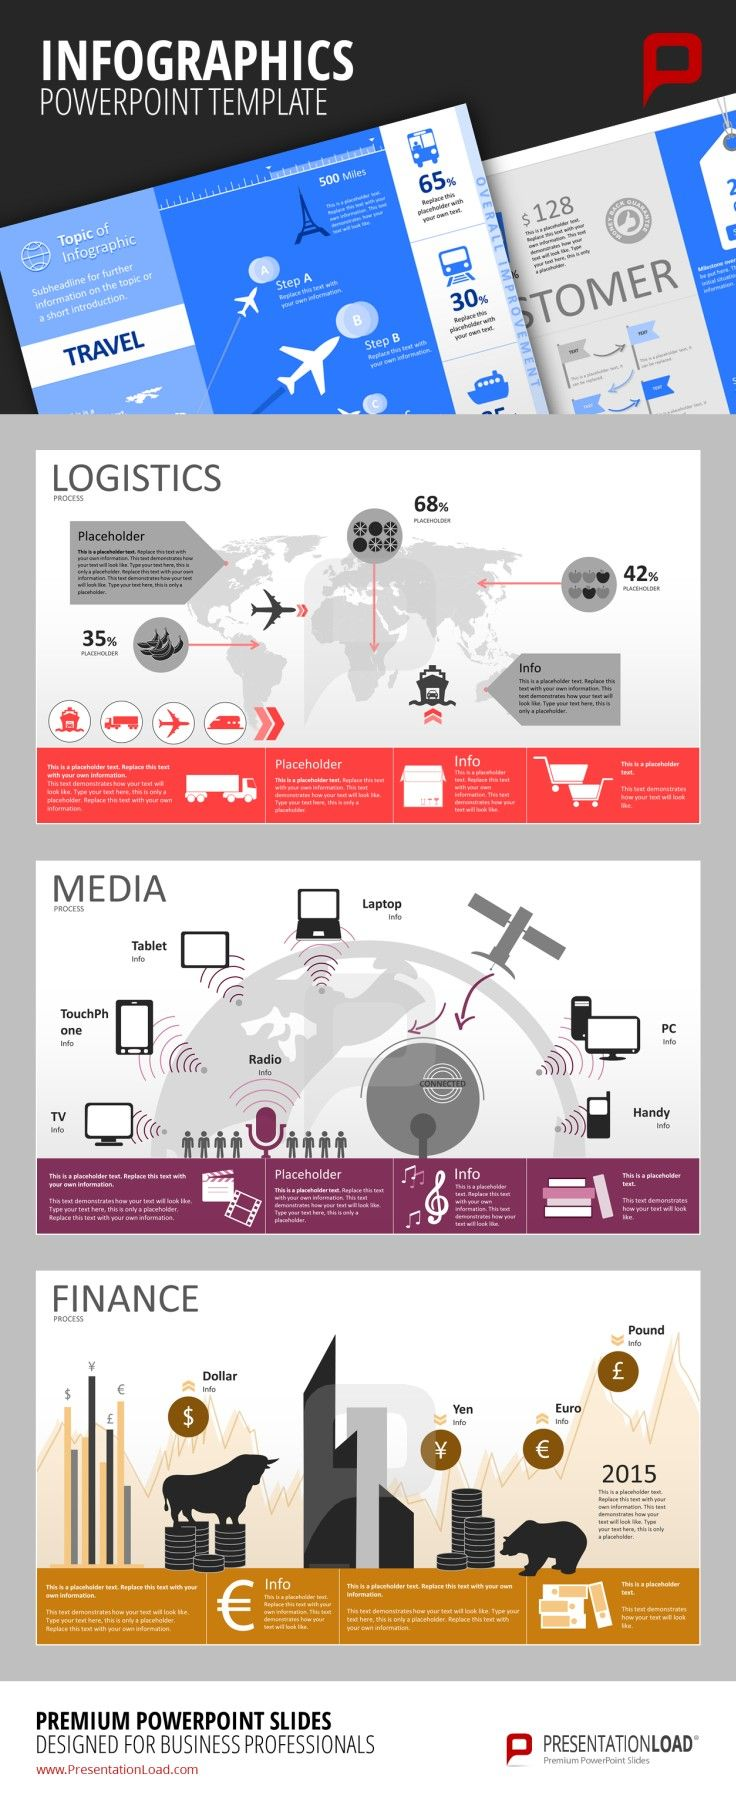 Infographic PowerPoint Templates Create a lucid and structured infographic about your company's worldwide logistics network or visualize some data about media use like TV, Tablets or Laptops. You can also easily create a graphical overview over finance related topics such as currency exchange rates or stock market prices. #presentationload  www.presentationl...